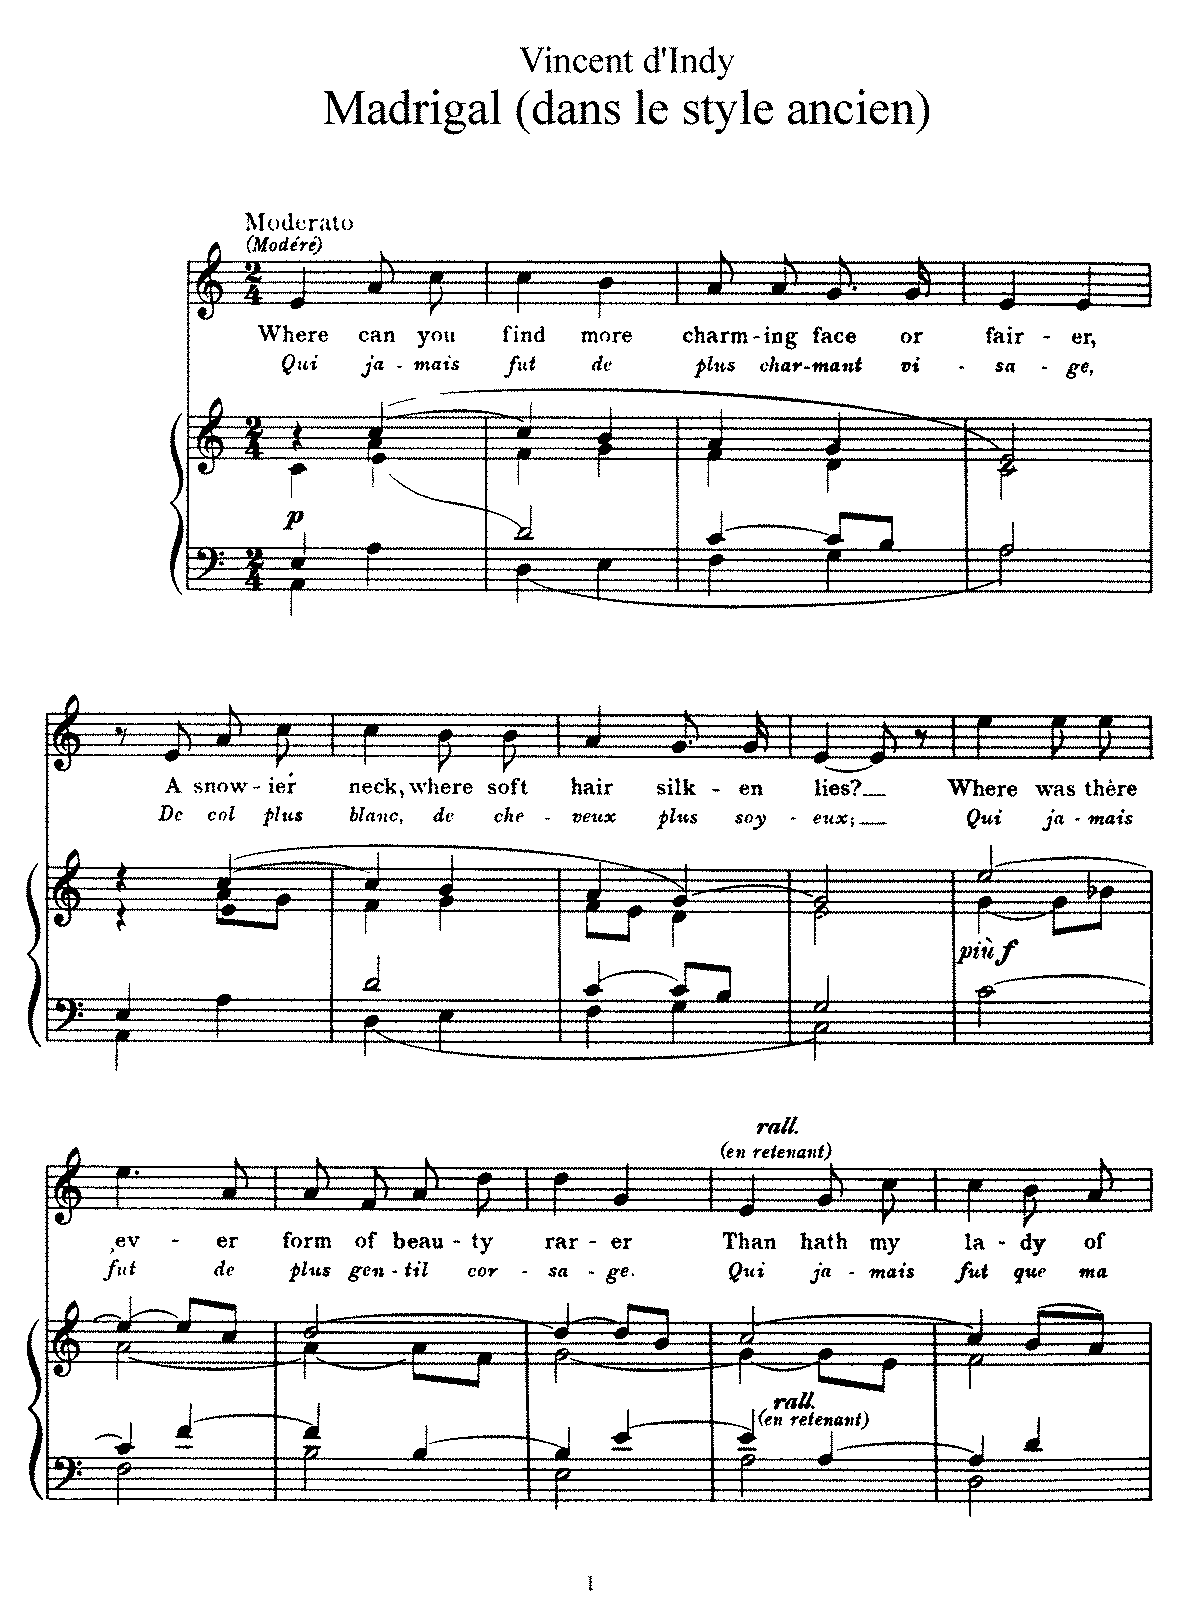 D'Indy - Madrigal, Op. 4 (voice and piano).pdf